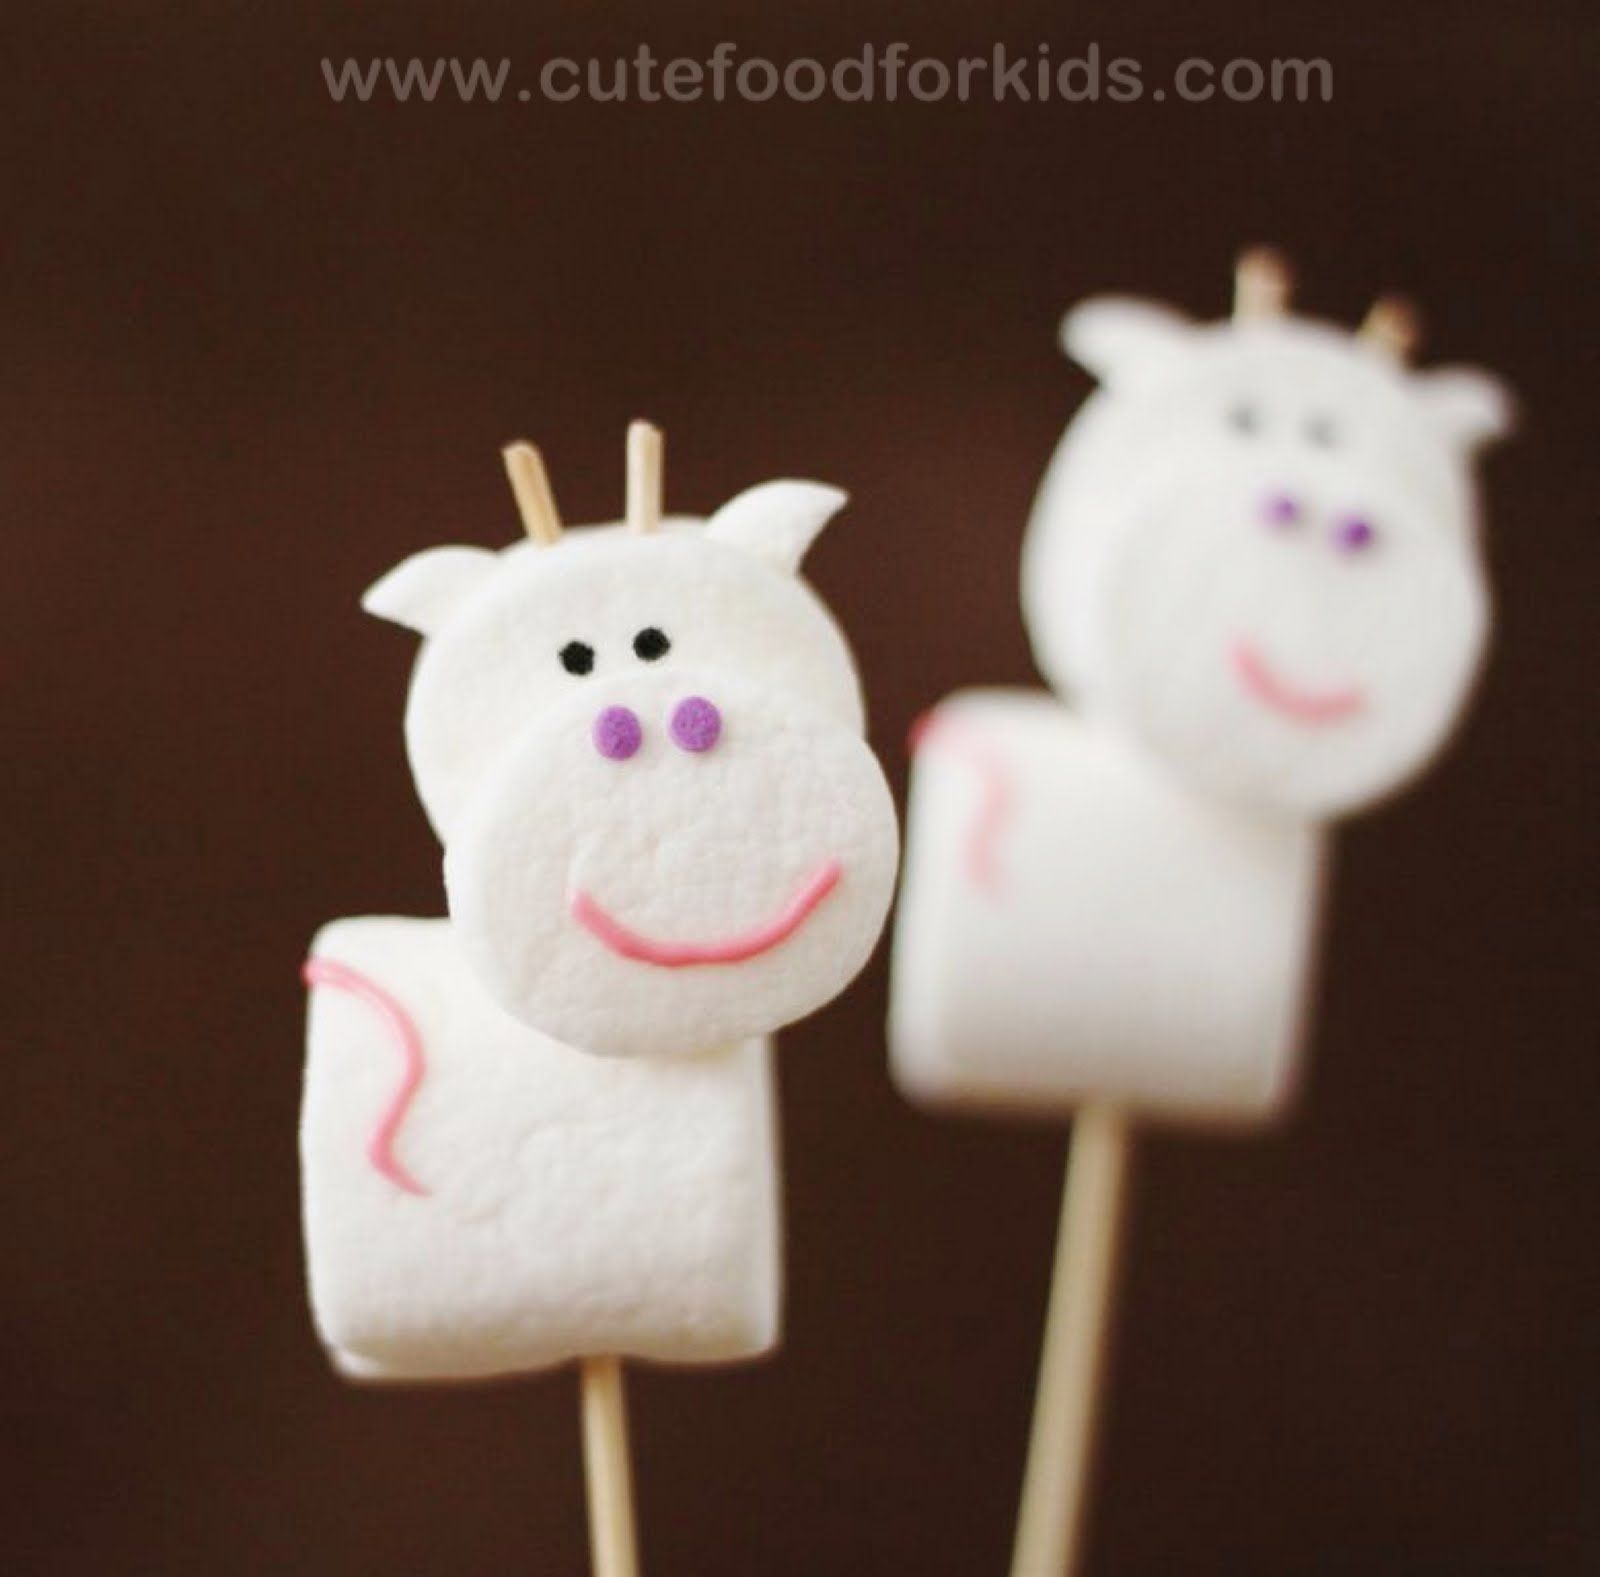 Cow pops for Channing's birthday except I didn't put toothpicks in it because of the kids eating them